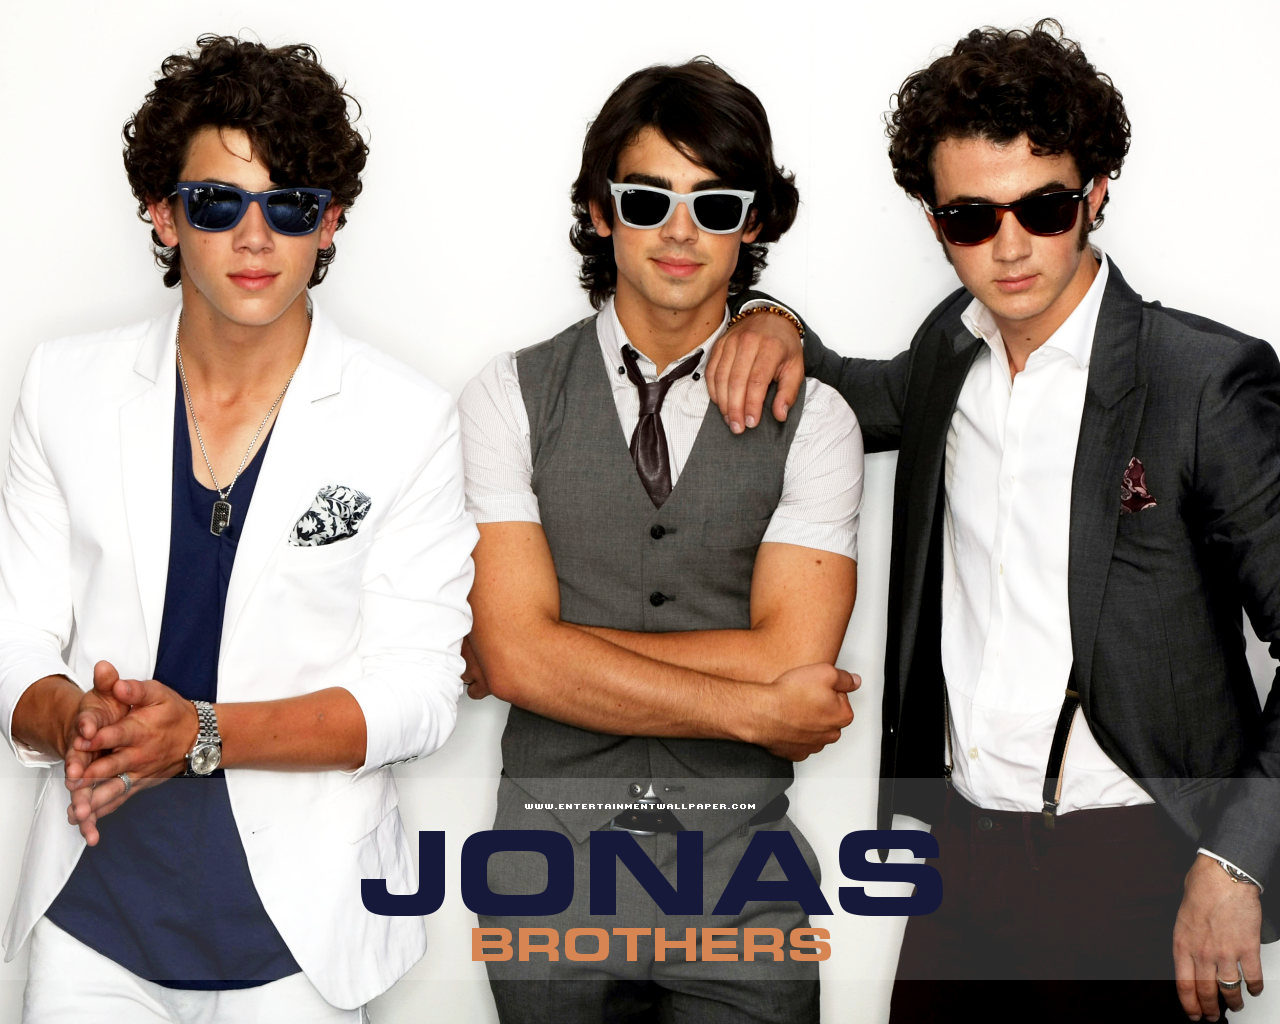 Jones Brothers Pictures